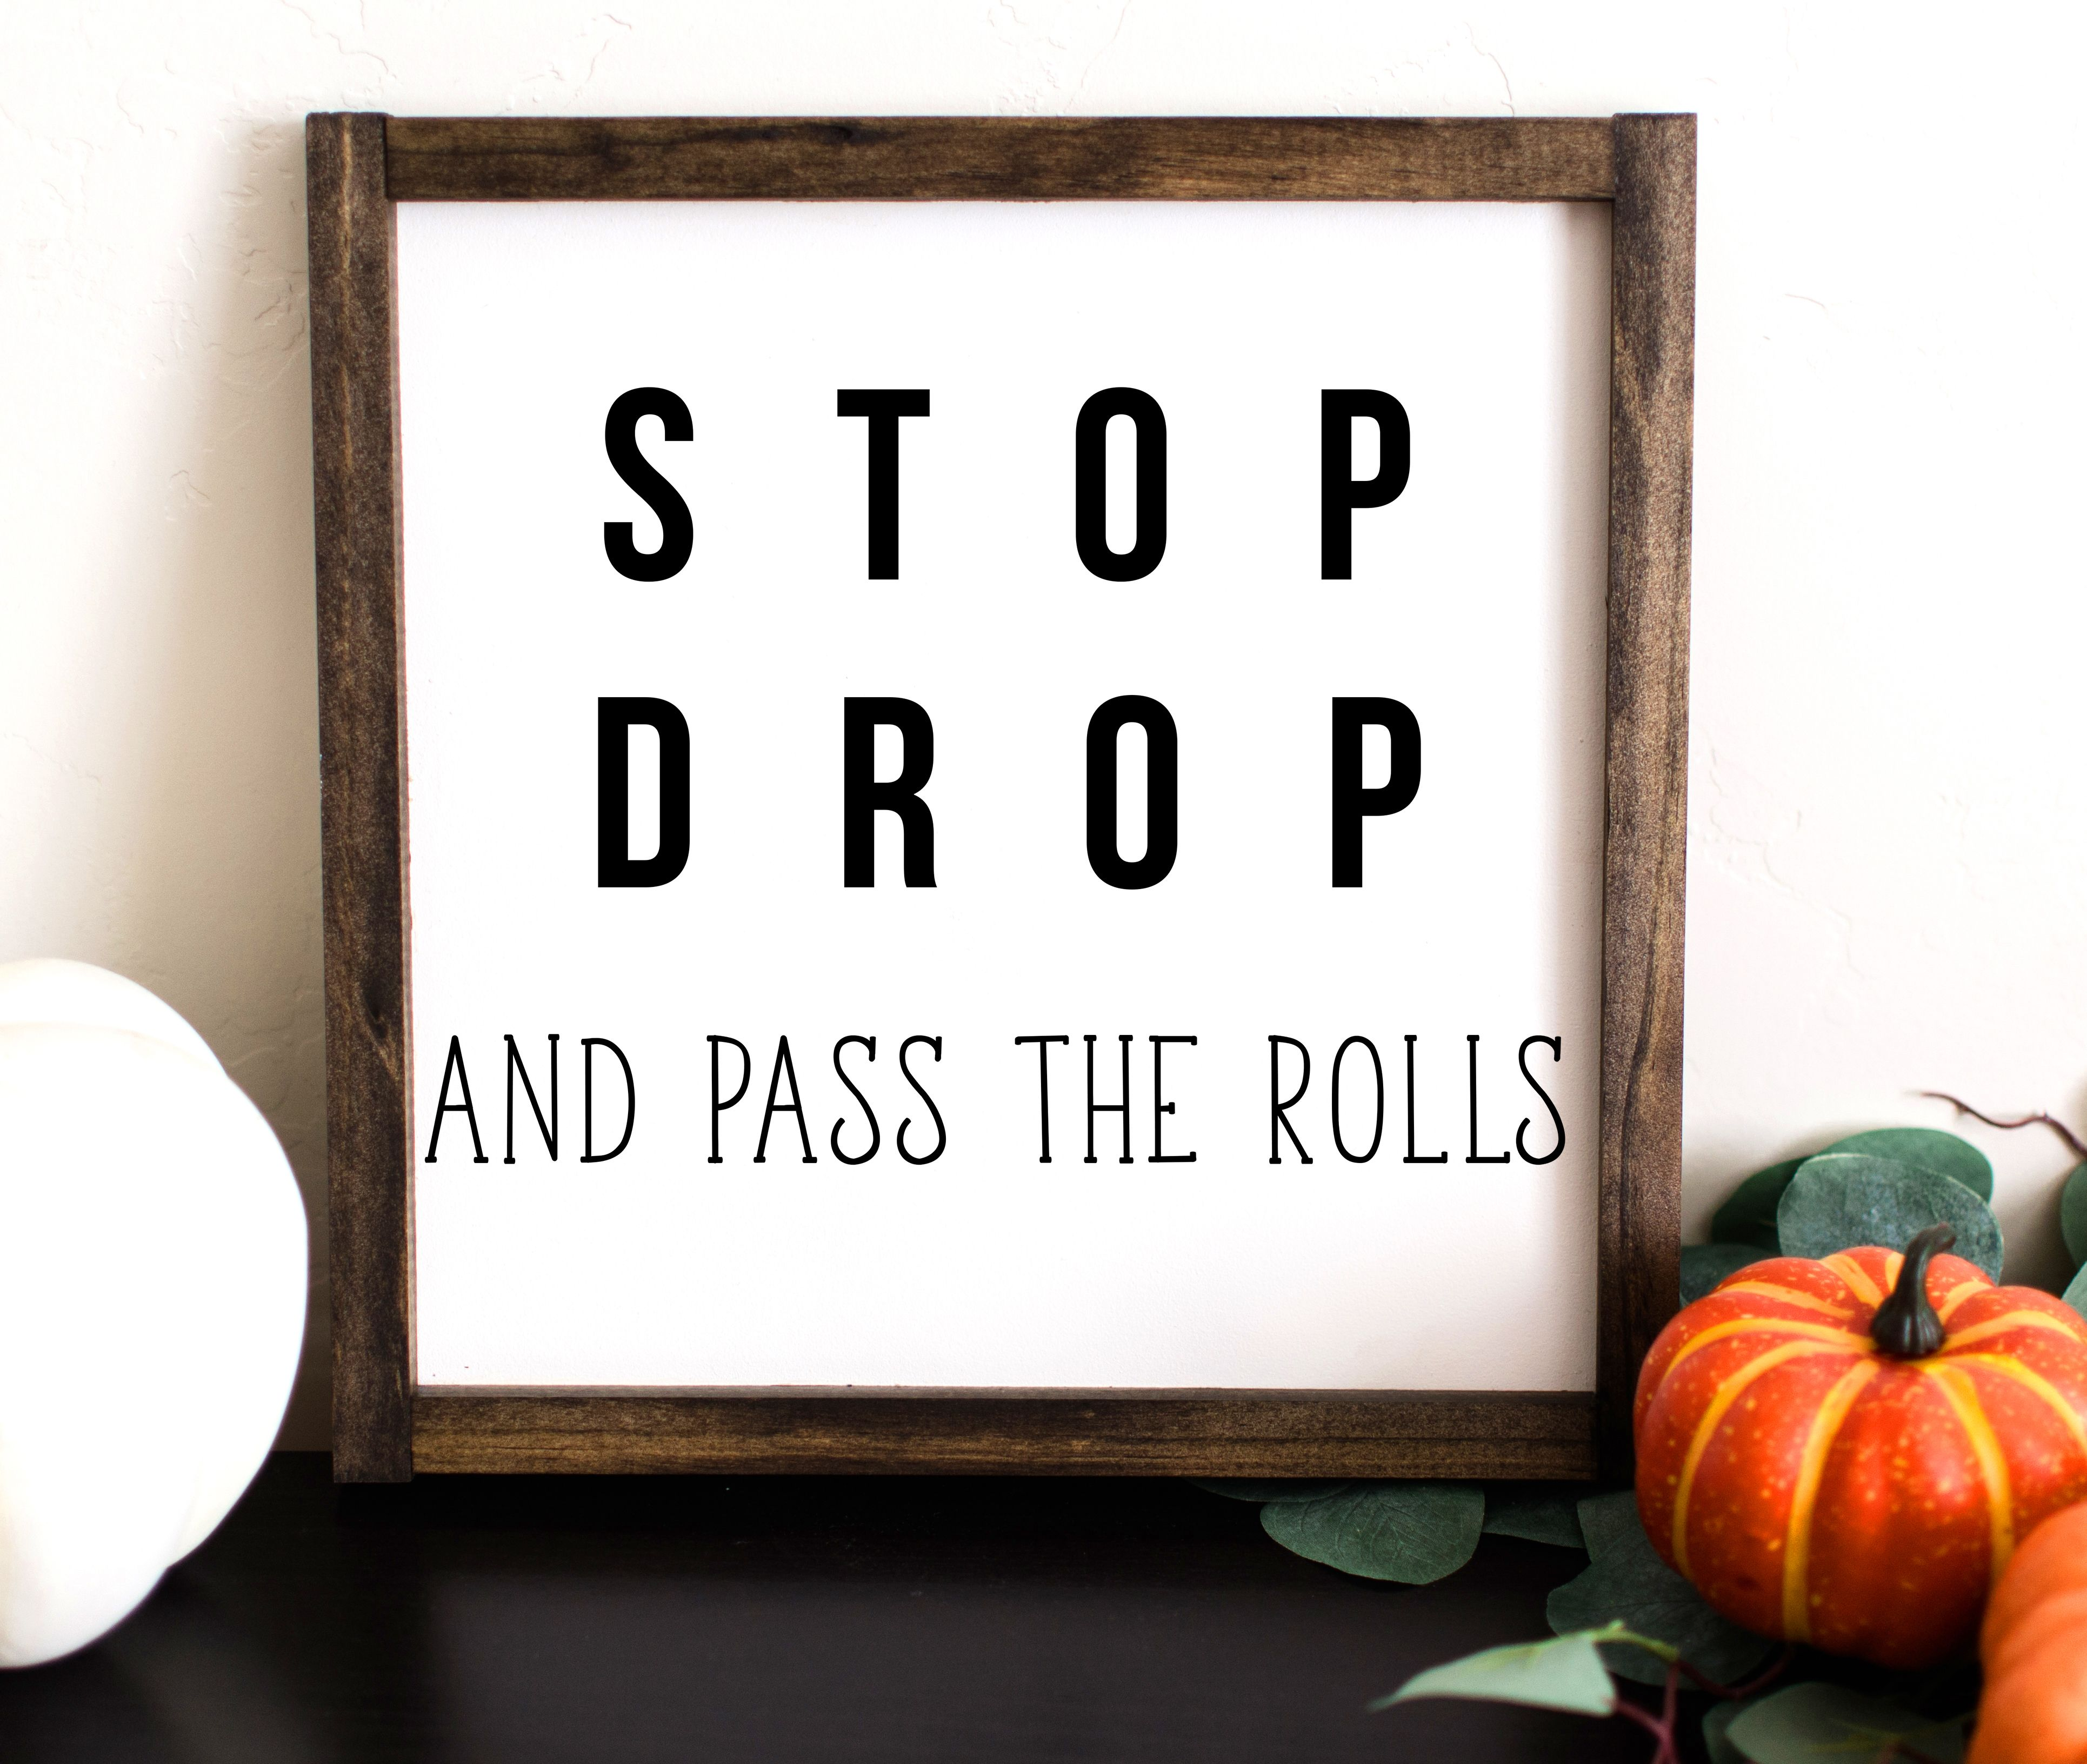 25+ Thanksgiving sayings for signs ideas in 2021